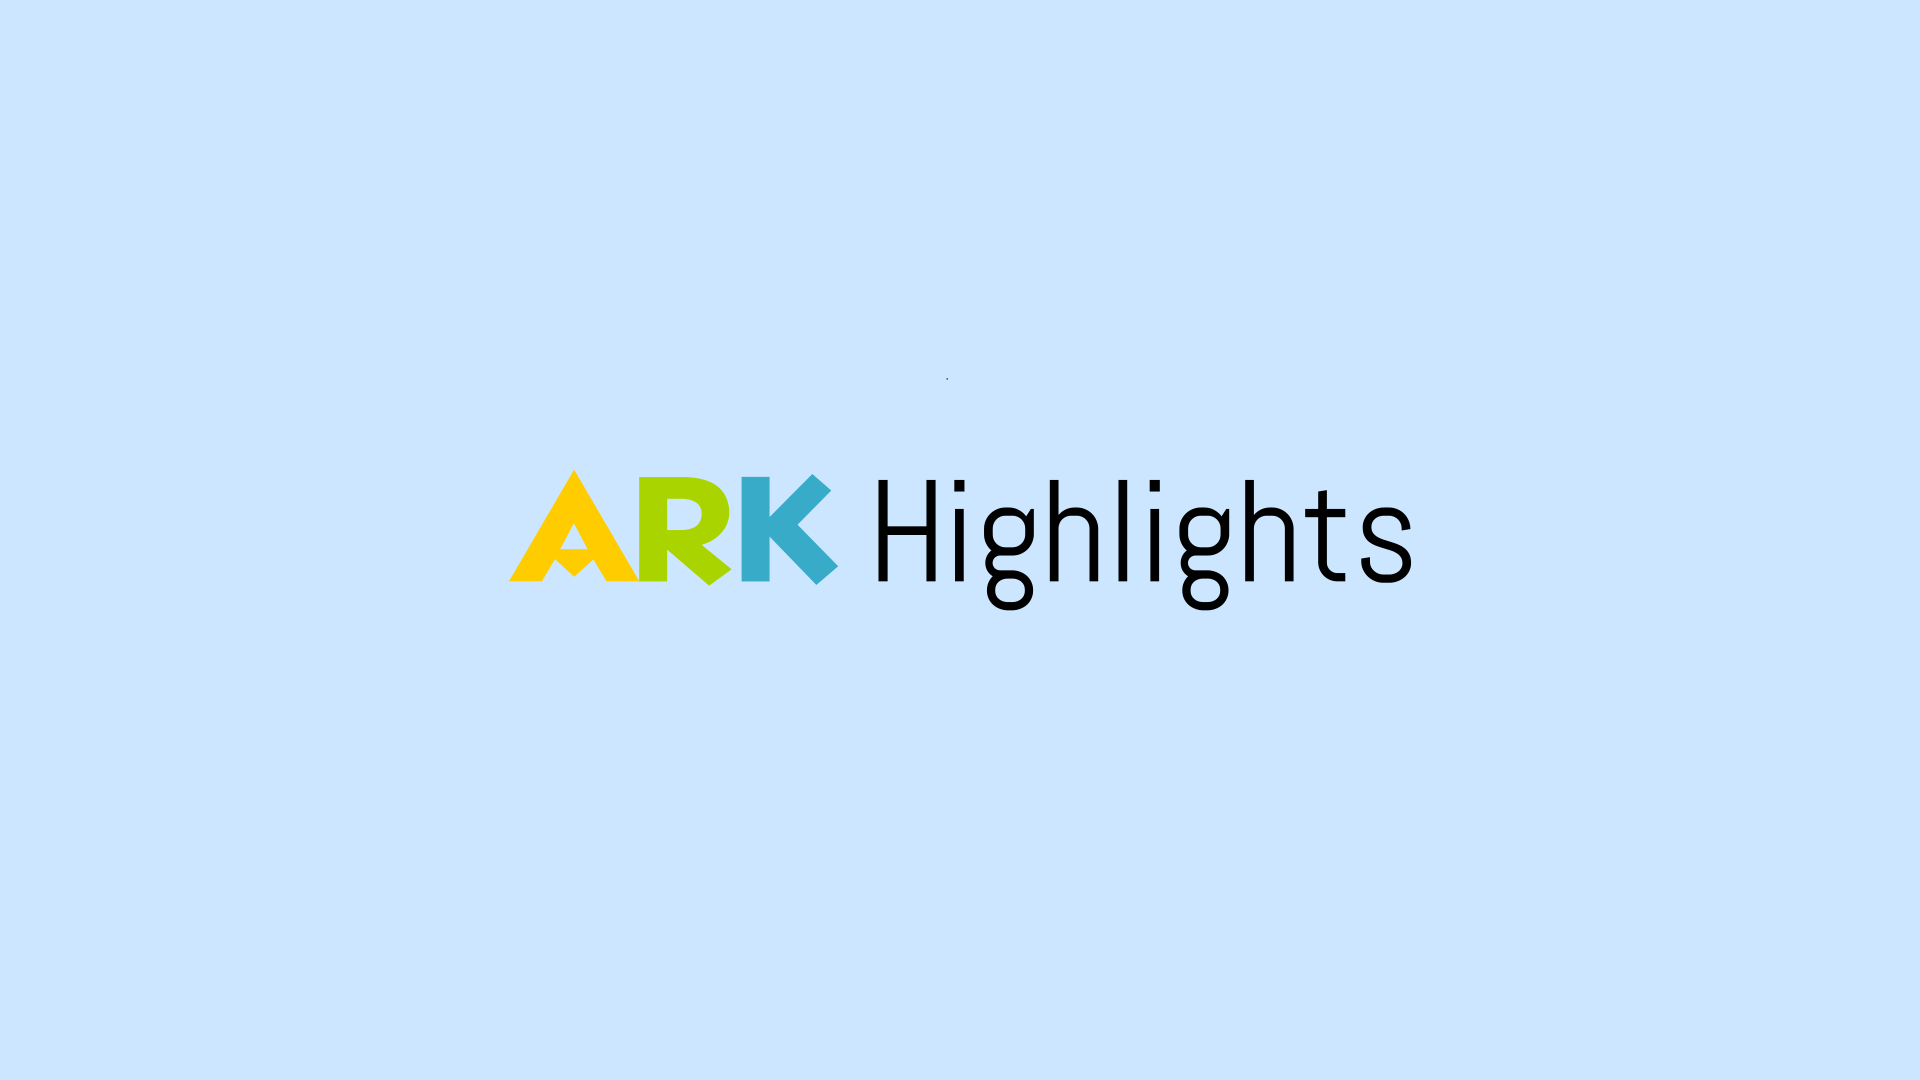 ARK Highlights